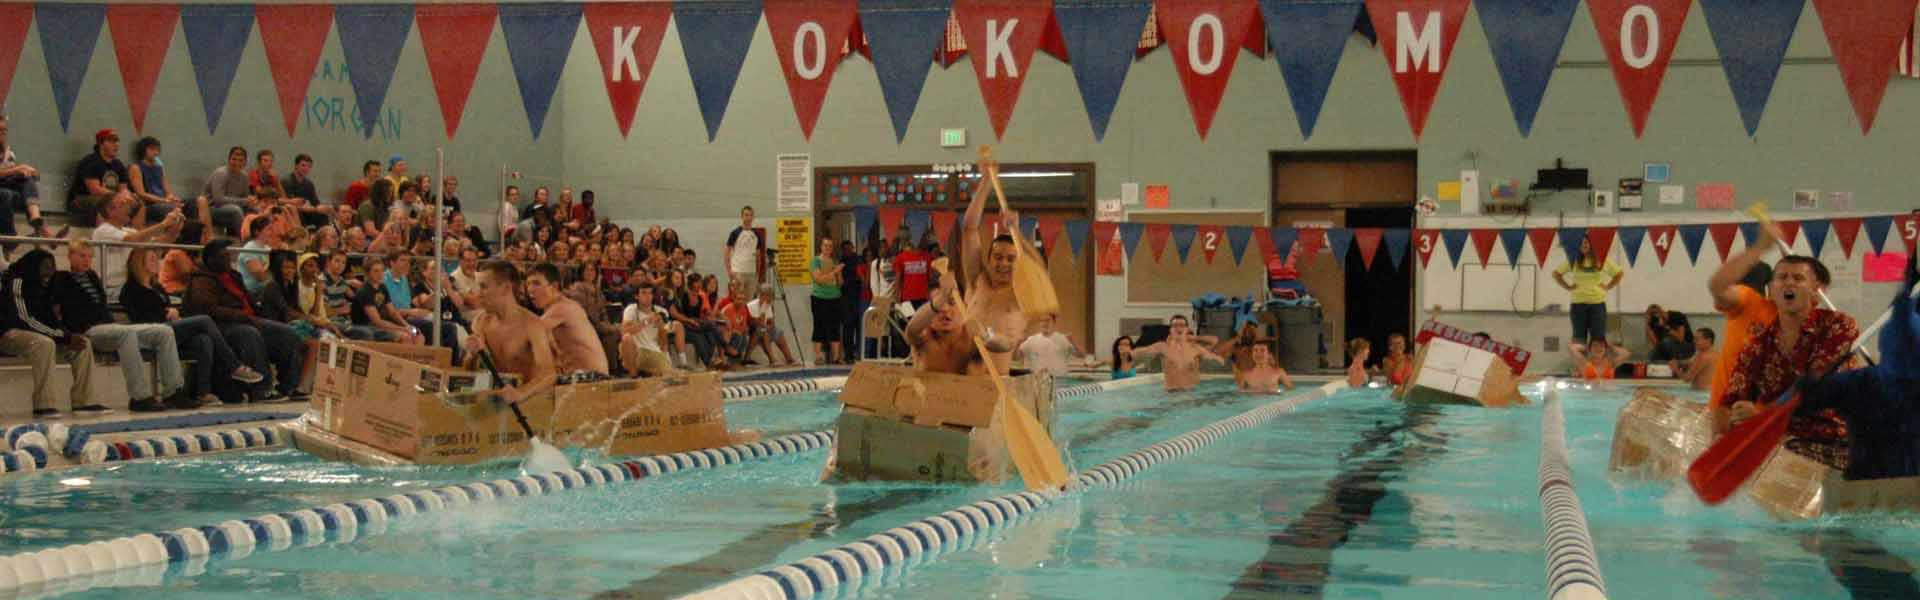 Kokomo-Highschool-IN-Pool-MAin-Banner-US-2019